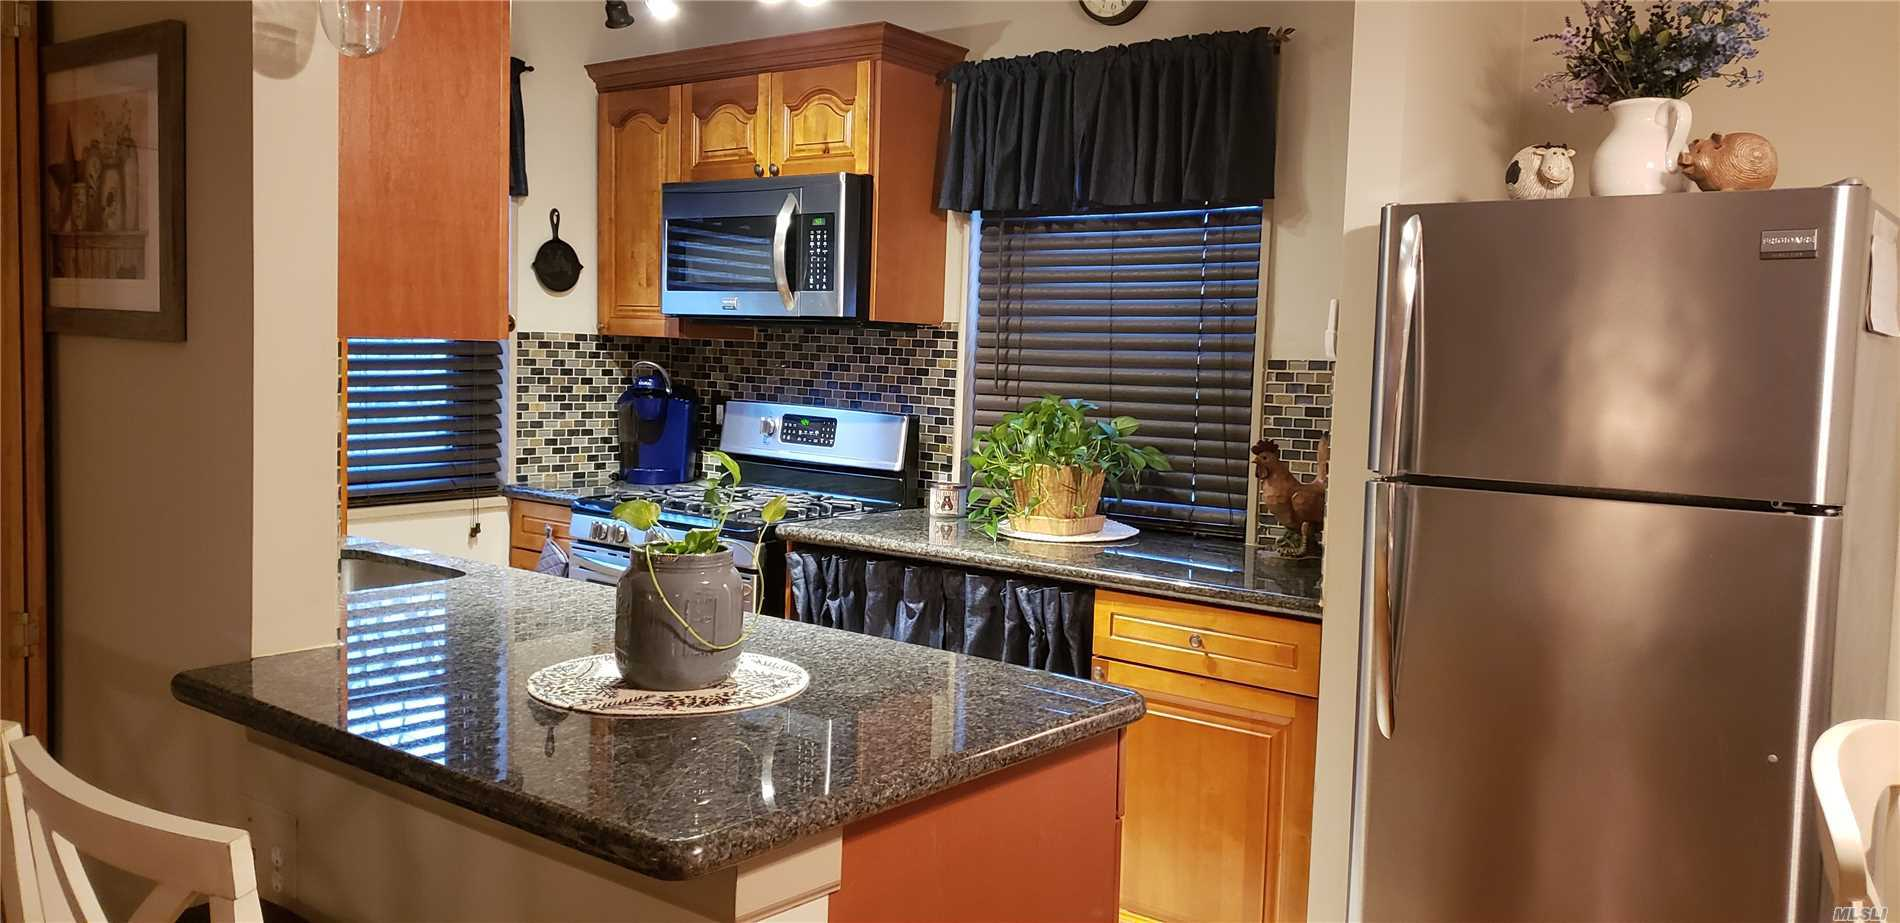 Totally Updated Co-Op On First Floor In Clearview Gardens. Features Living Room, Dining Area, Kitchen And Full Bath. Hardwood Floors, Washer And Dryer In Unit. All Utilities Included In Maintenance.